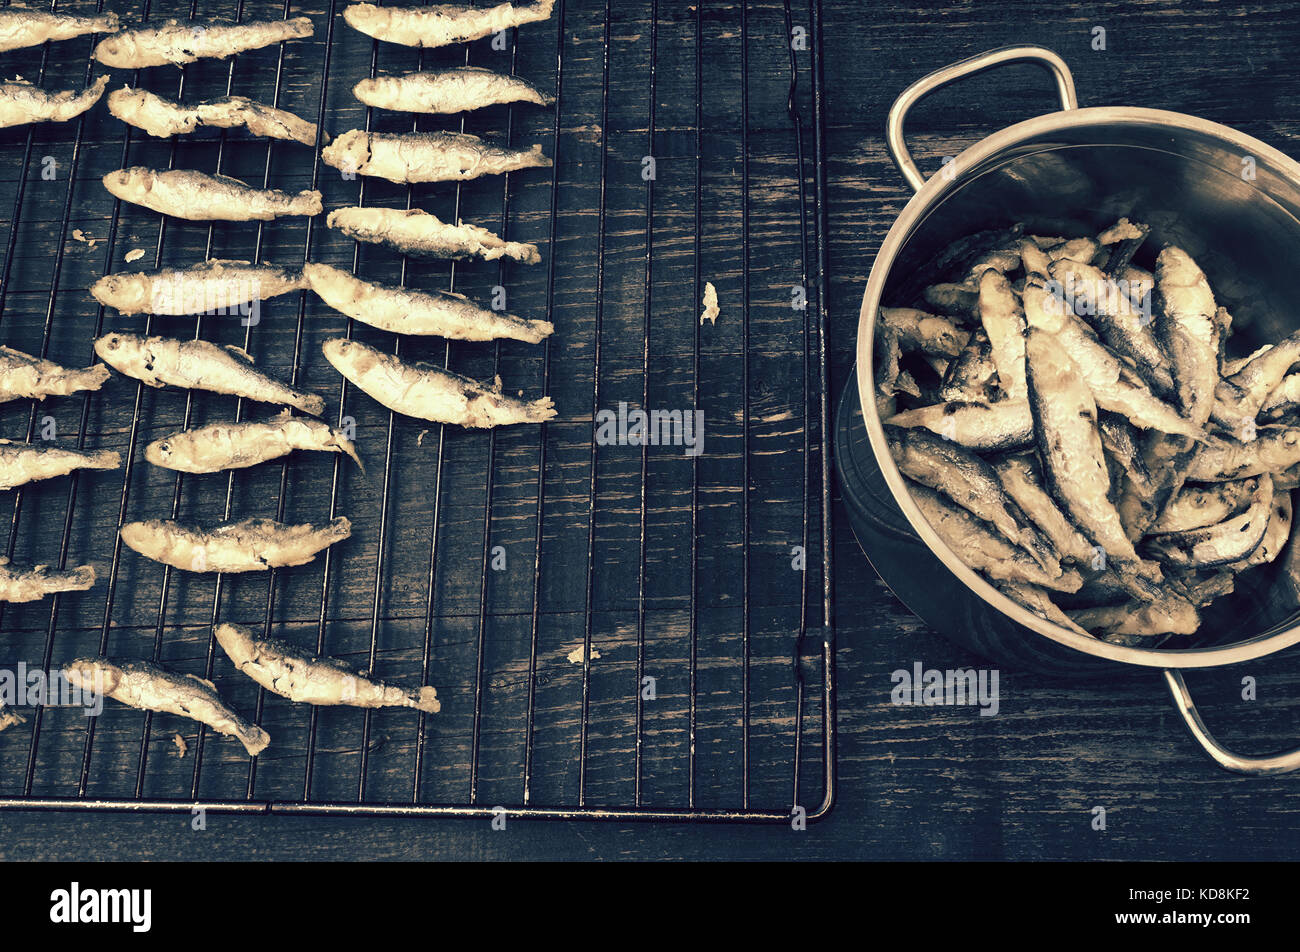 Sardines prepared in a traditional way - Stock Image